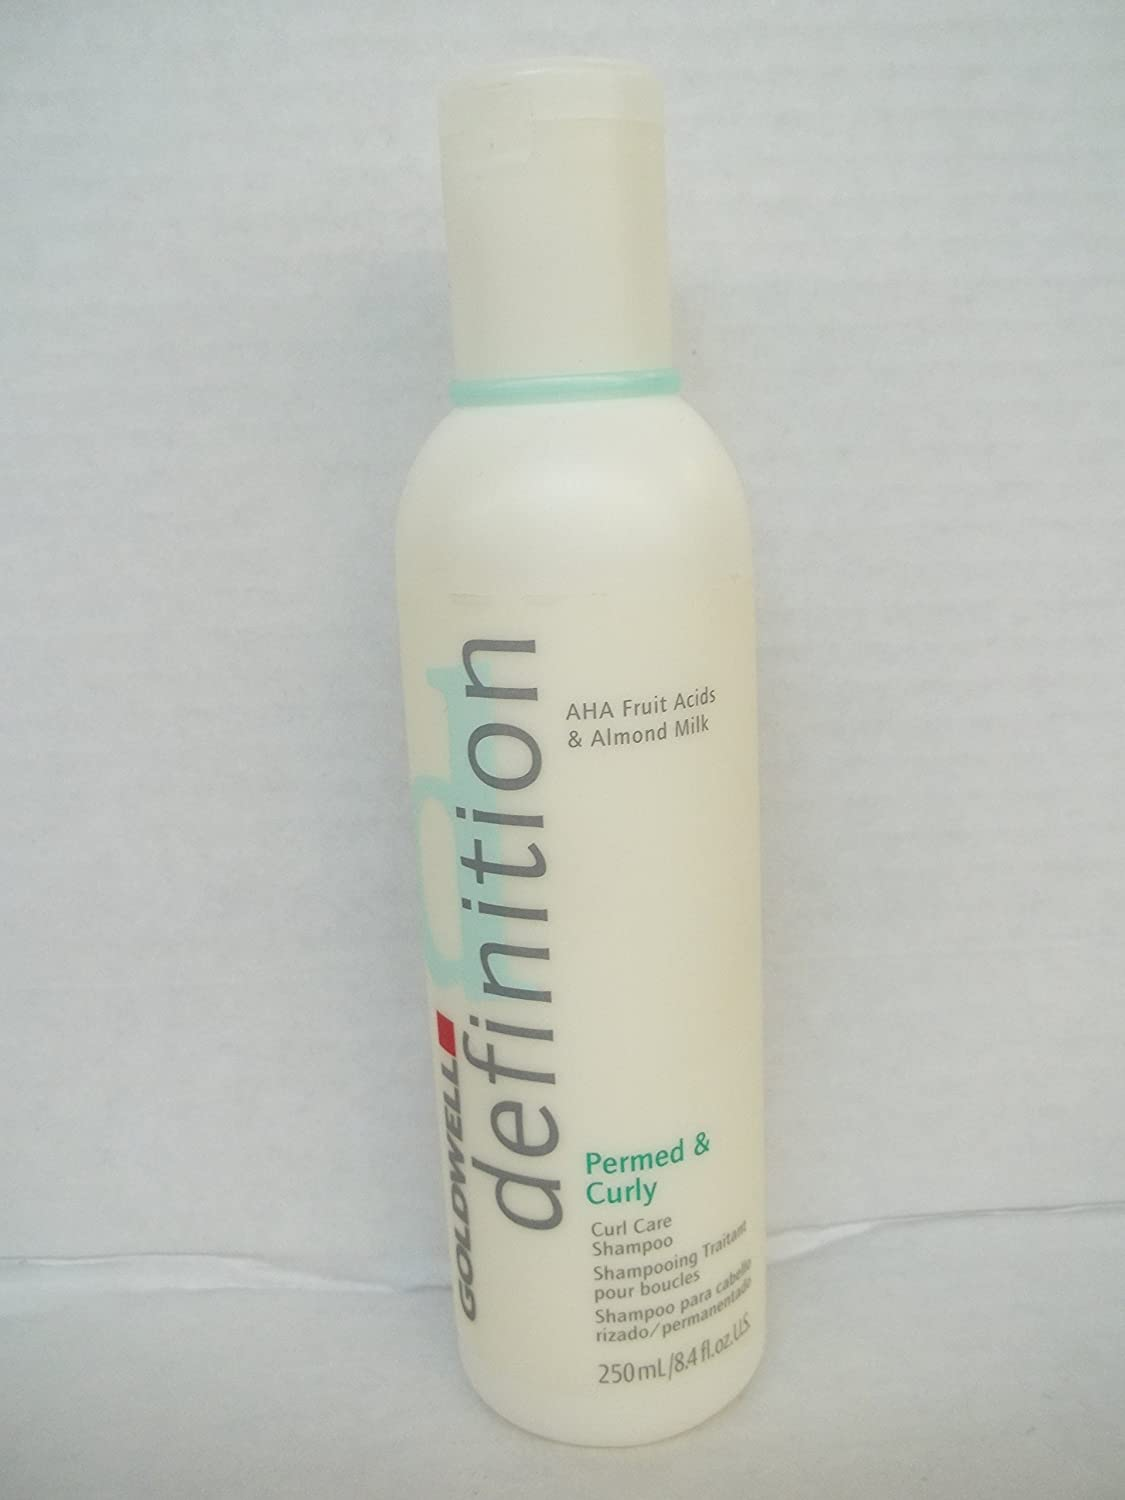 Goldwell Permed and Curly Shampoo 8.4 Fl